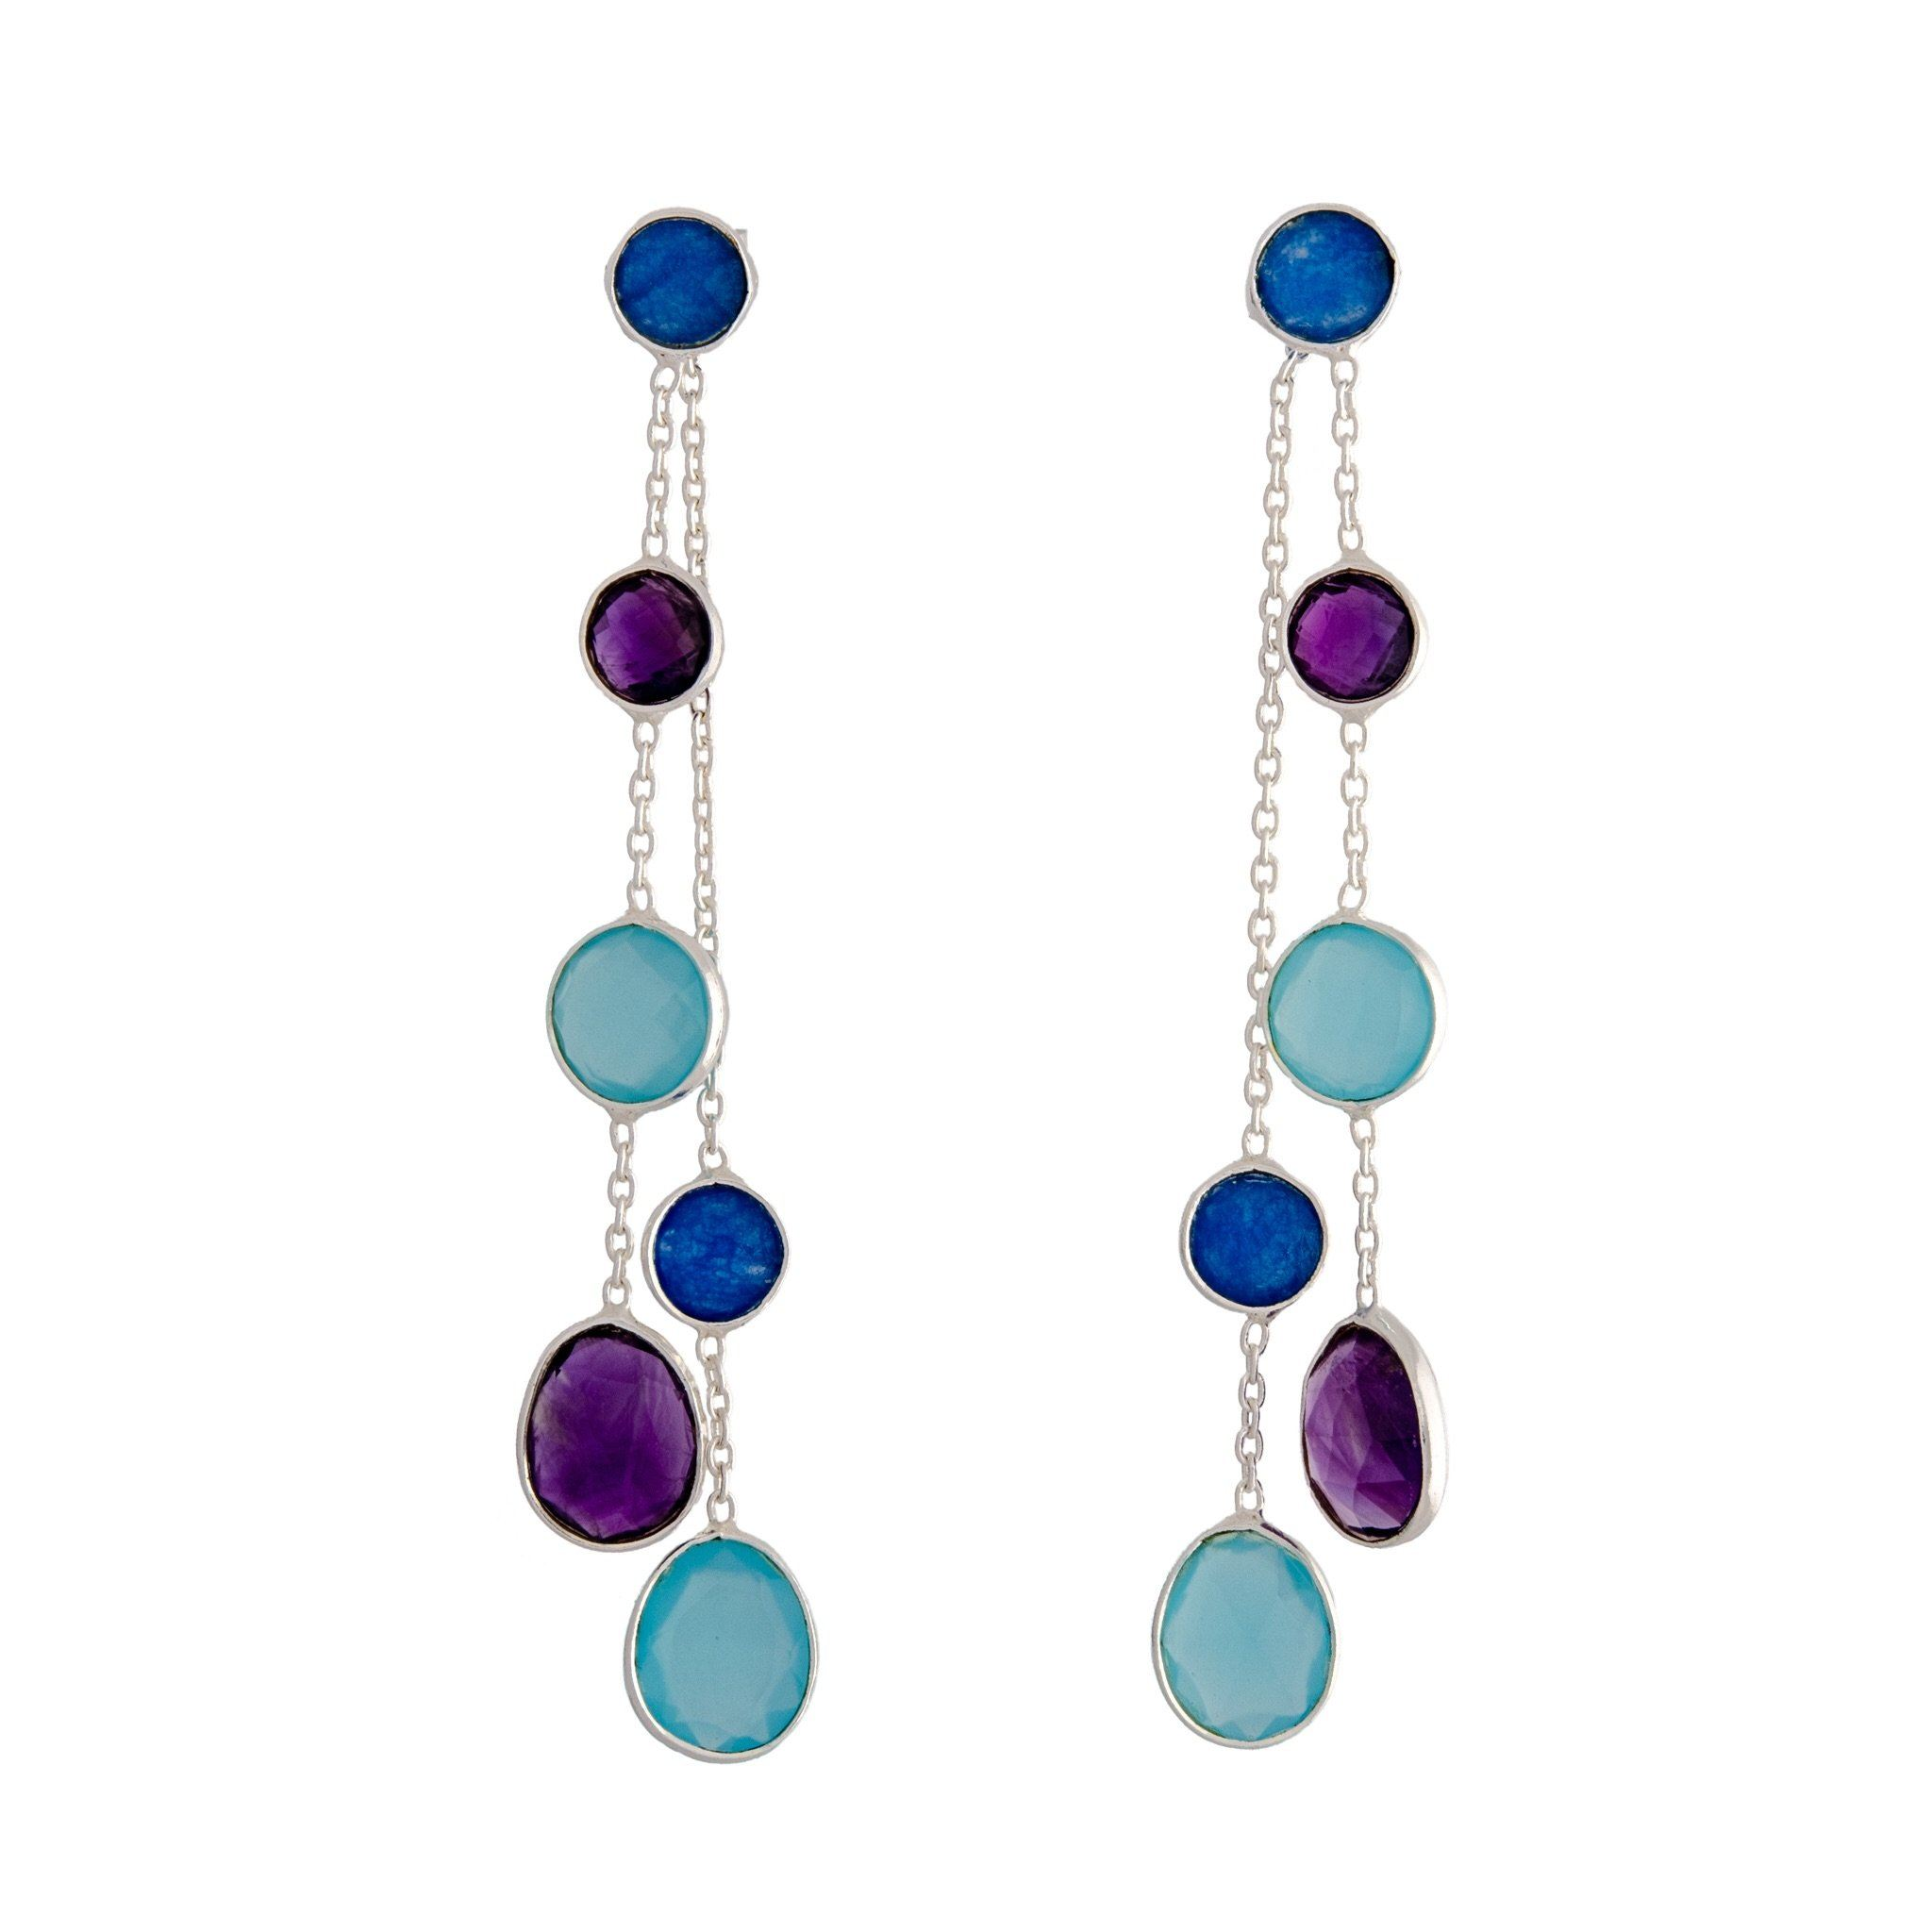 BUA blue chalcedony earrings